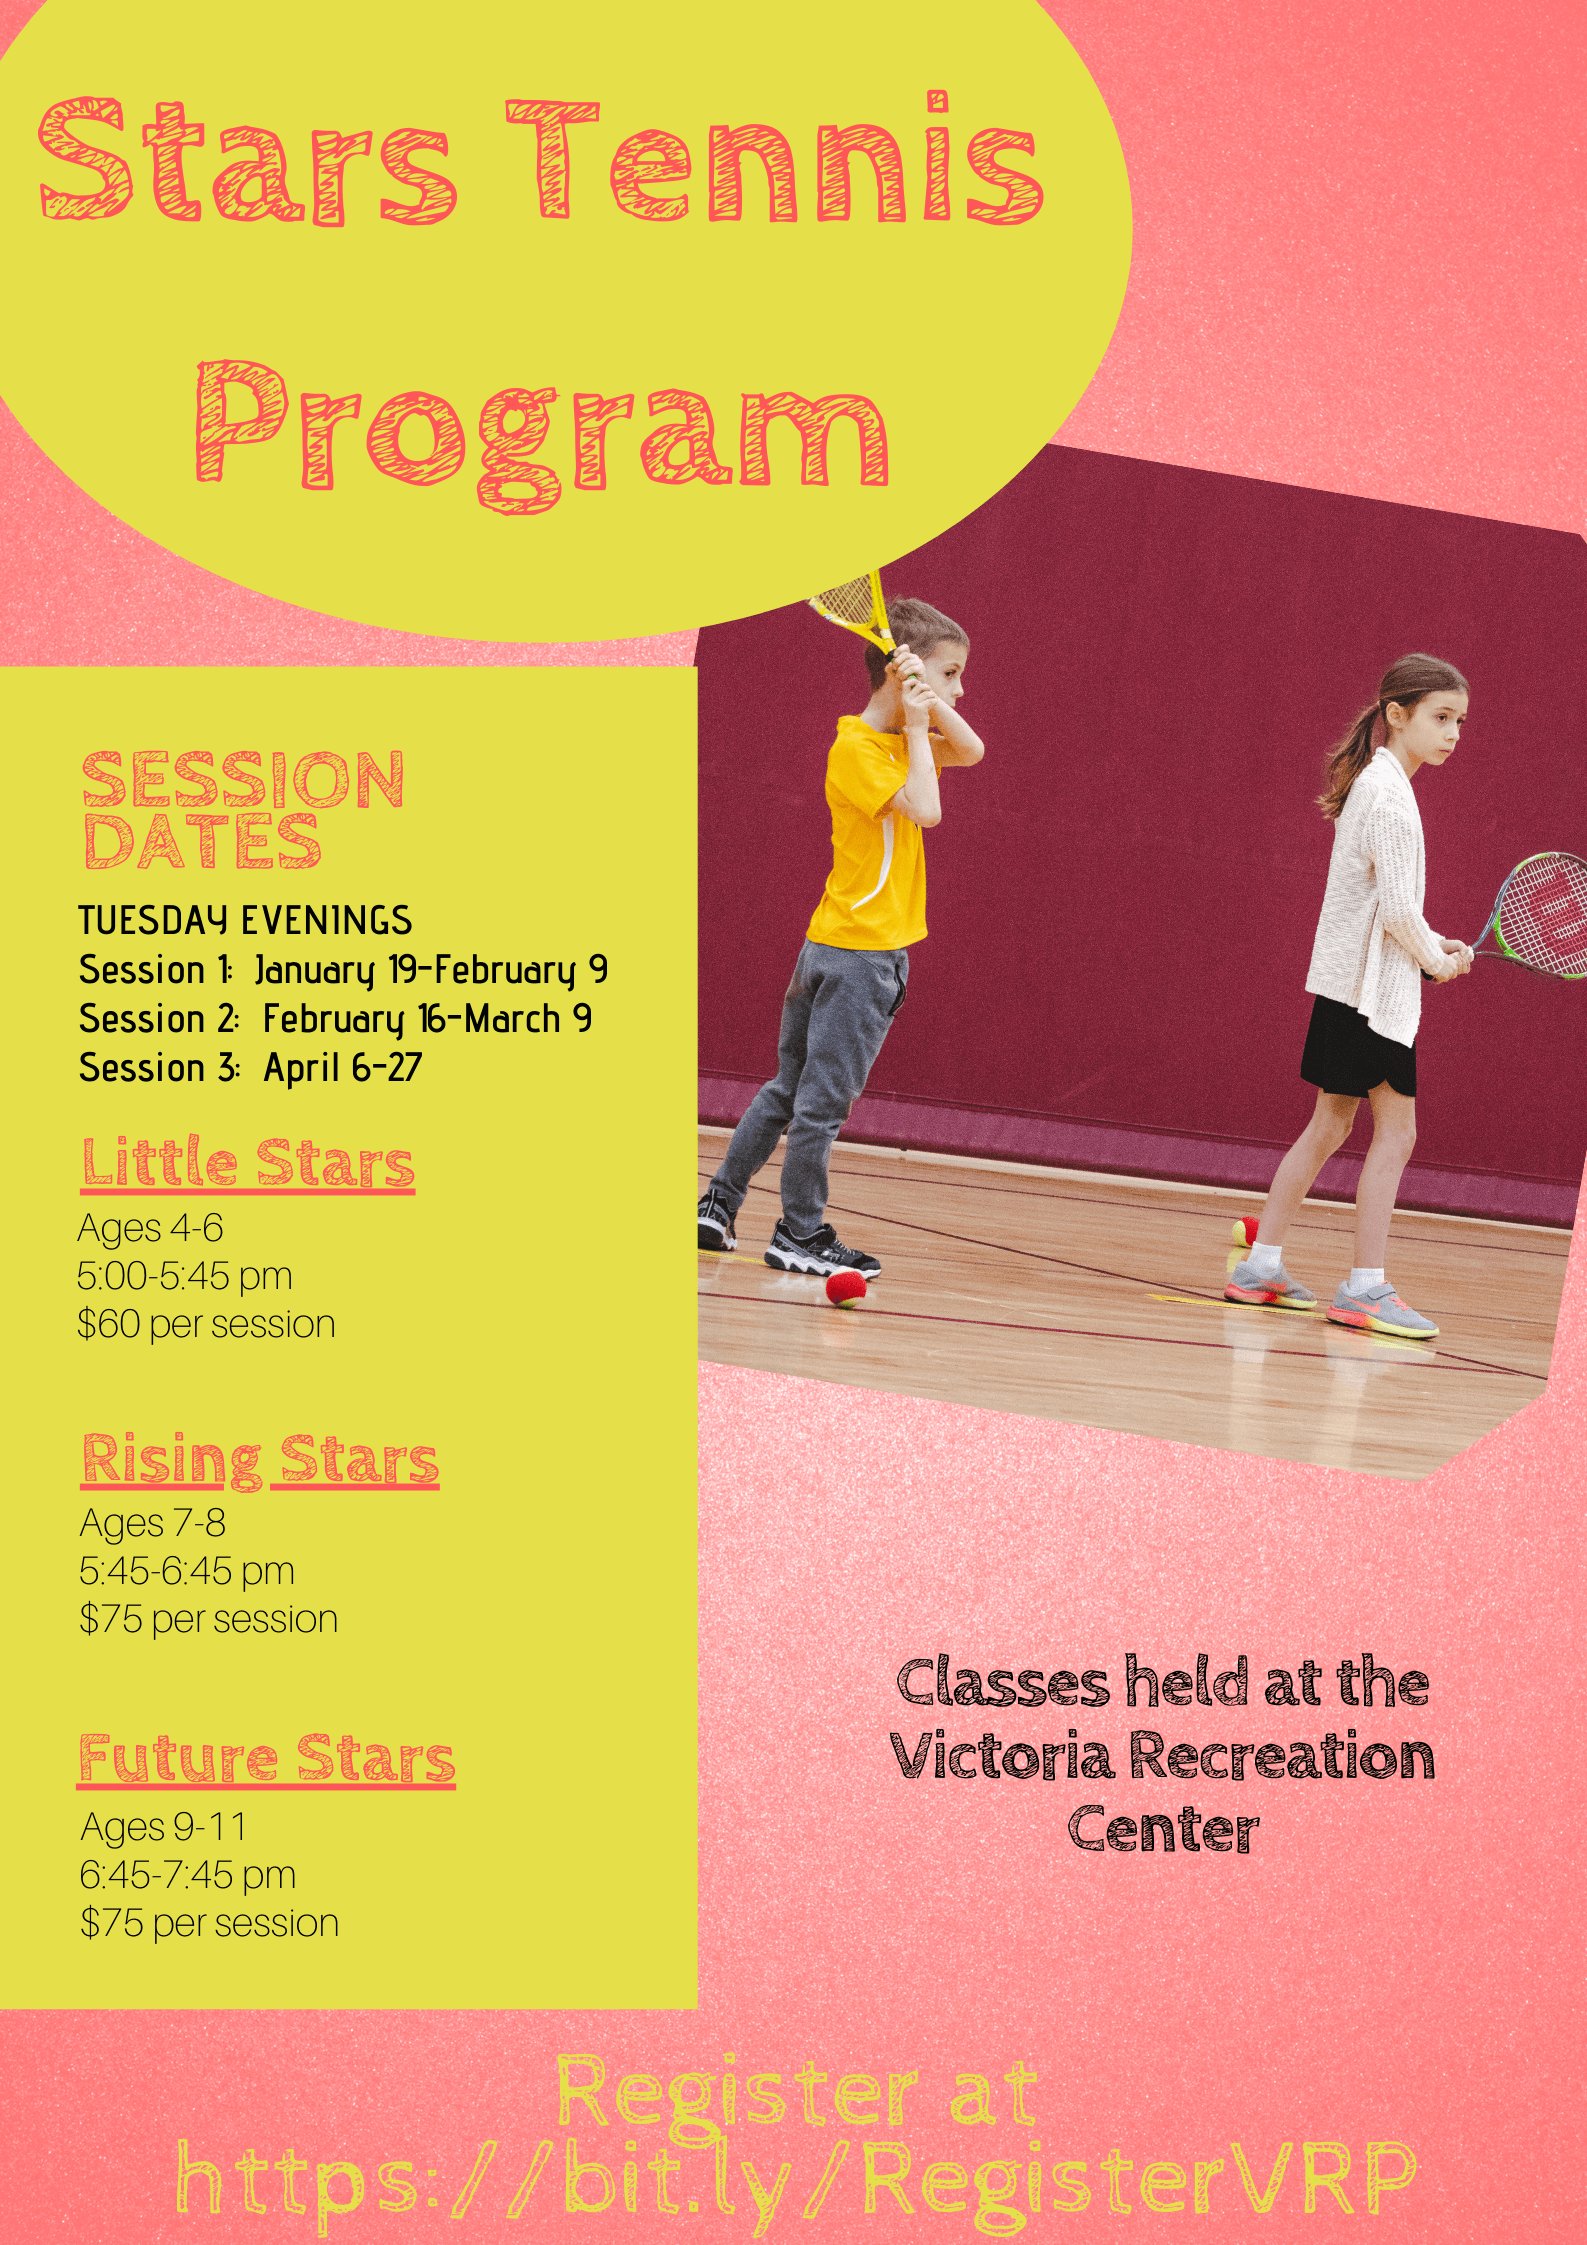 Stars Tennis Program Winter 2021